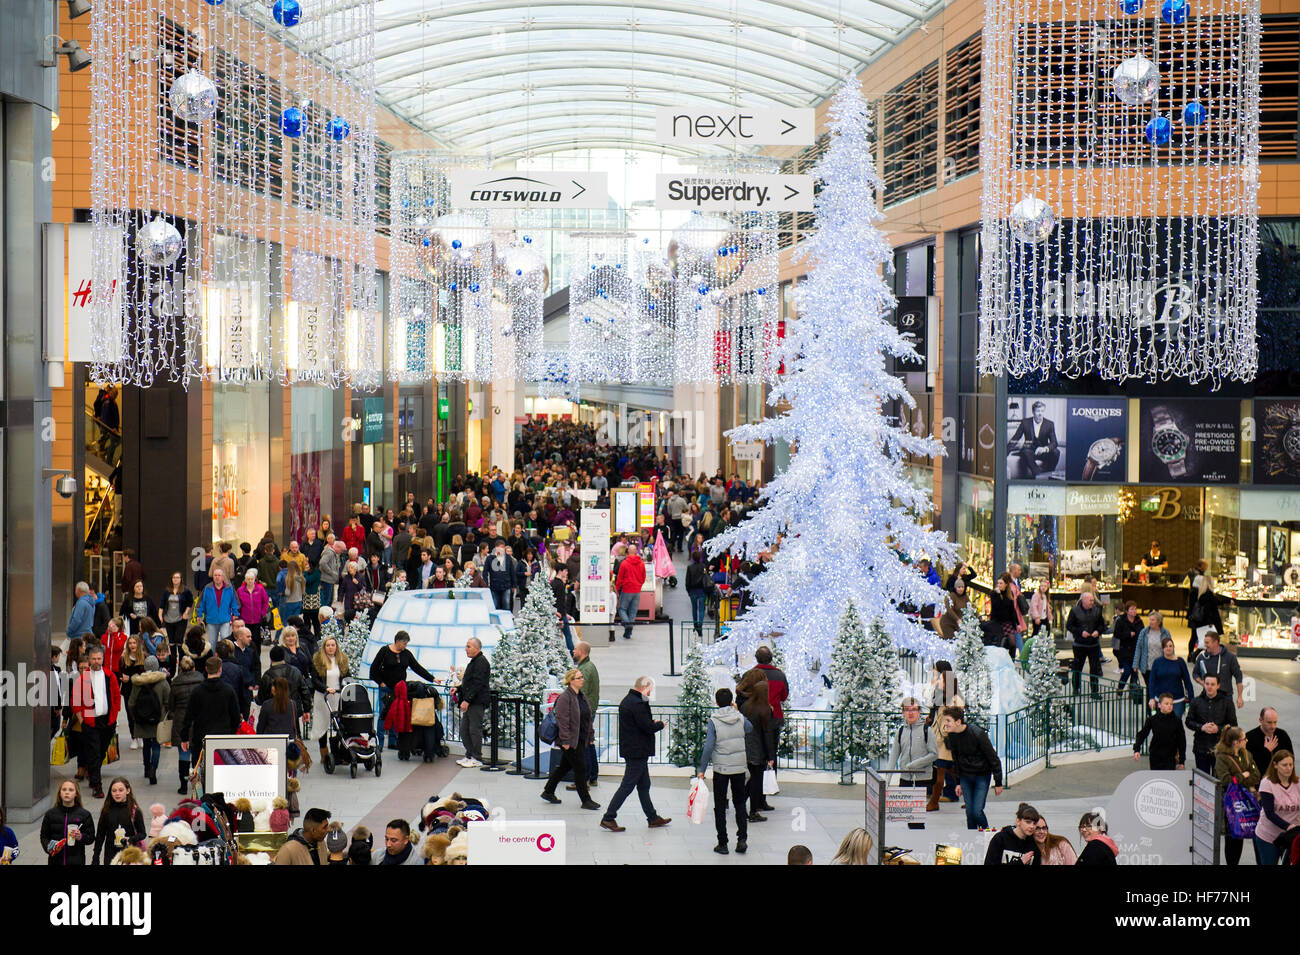 Christmas decorations at the Centre shopping mall, Livingston, West Lothian. - Stock Image